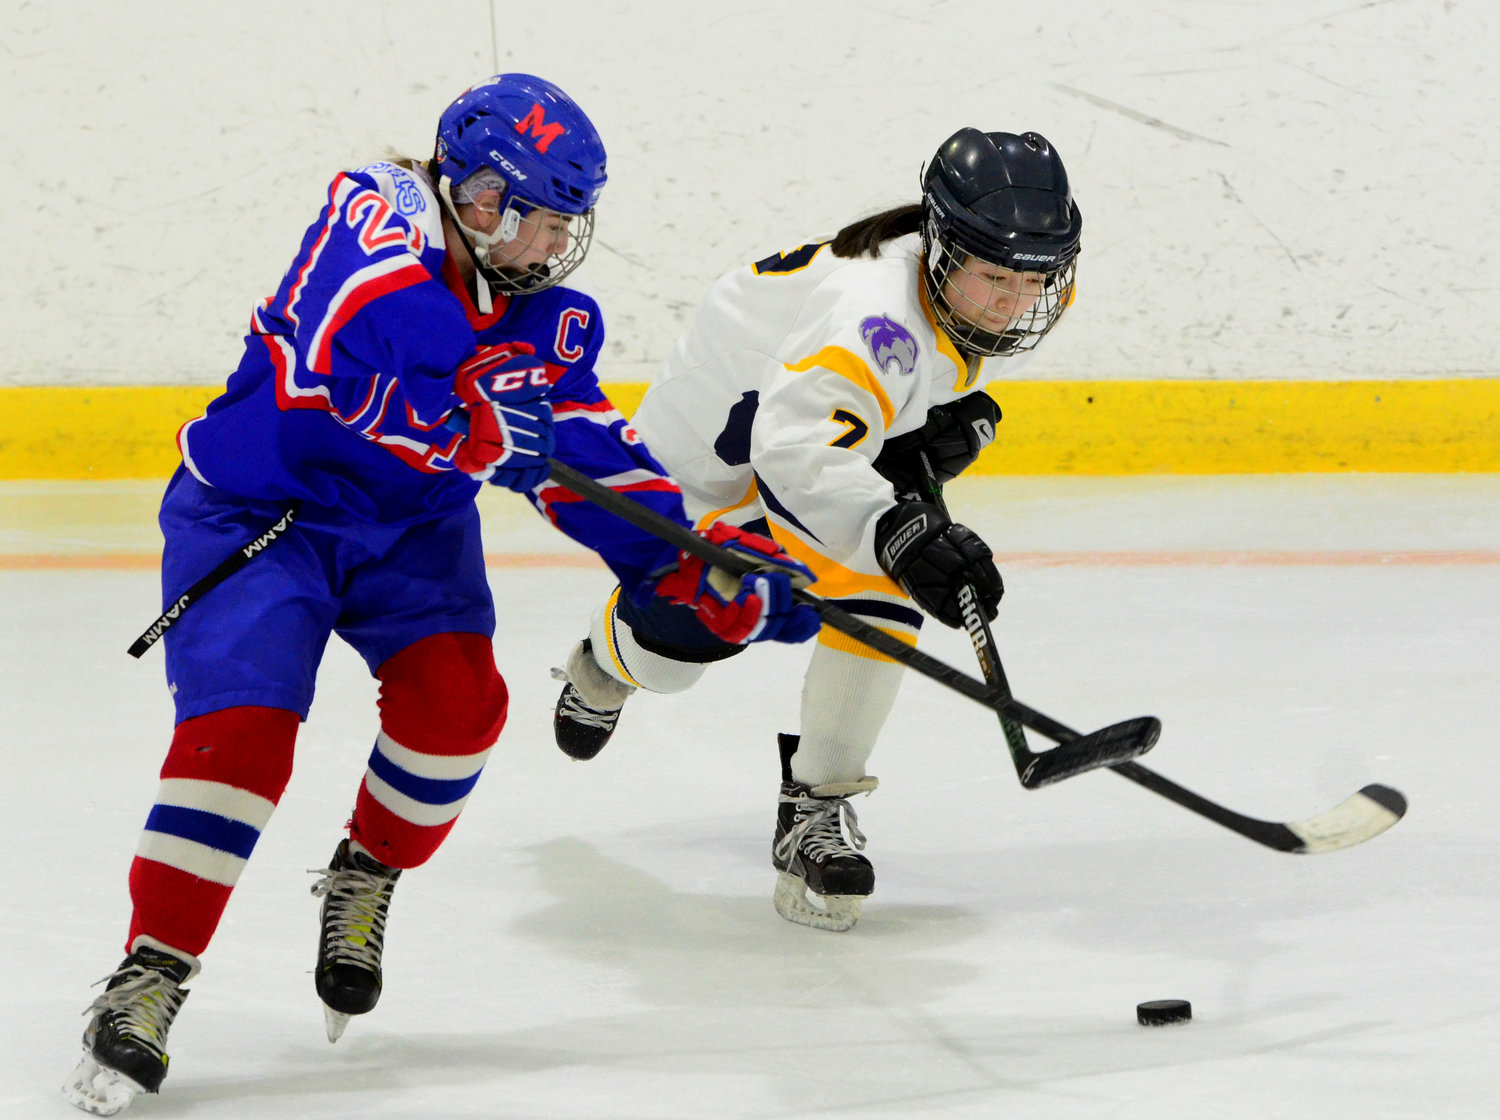 Defenseman Layla Rappleye fights for a loose puck in the defensive zone.